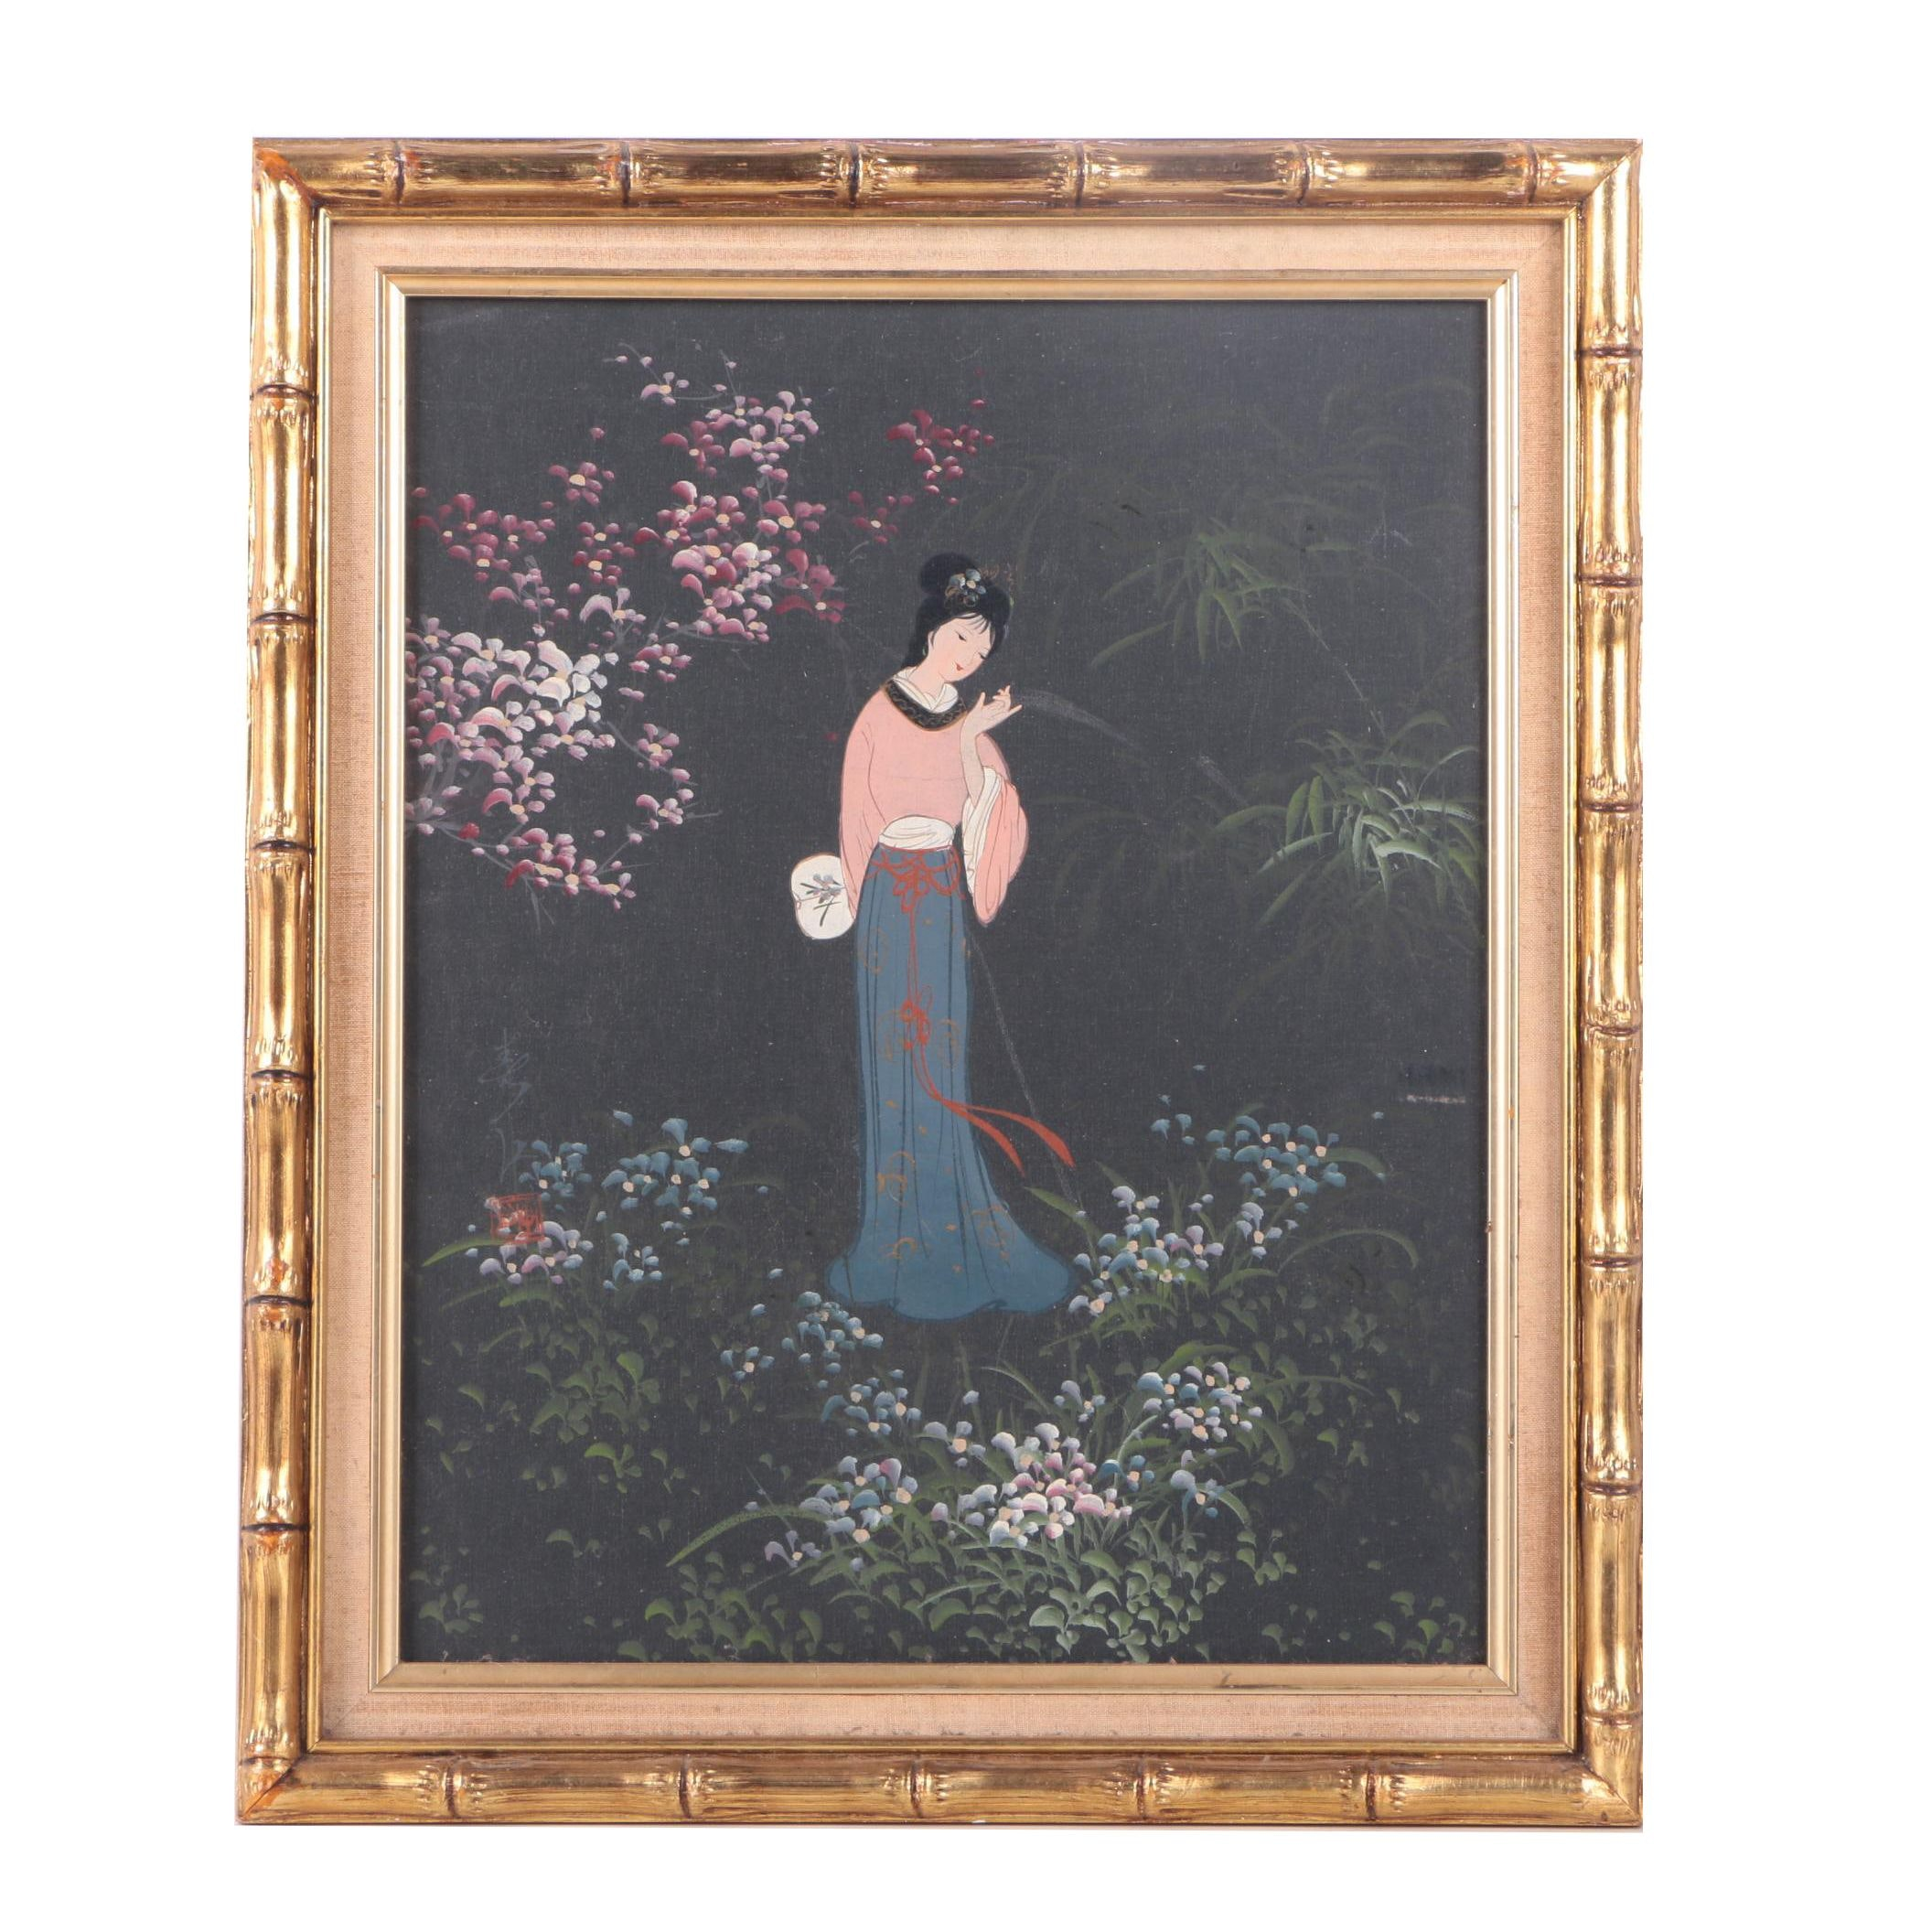 East Asian Style Oil Painting on Canvas of Woman